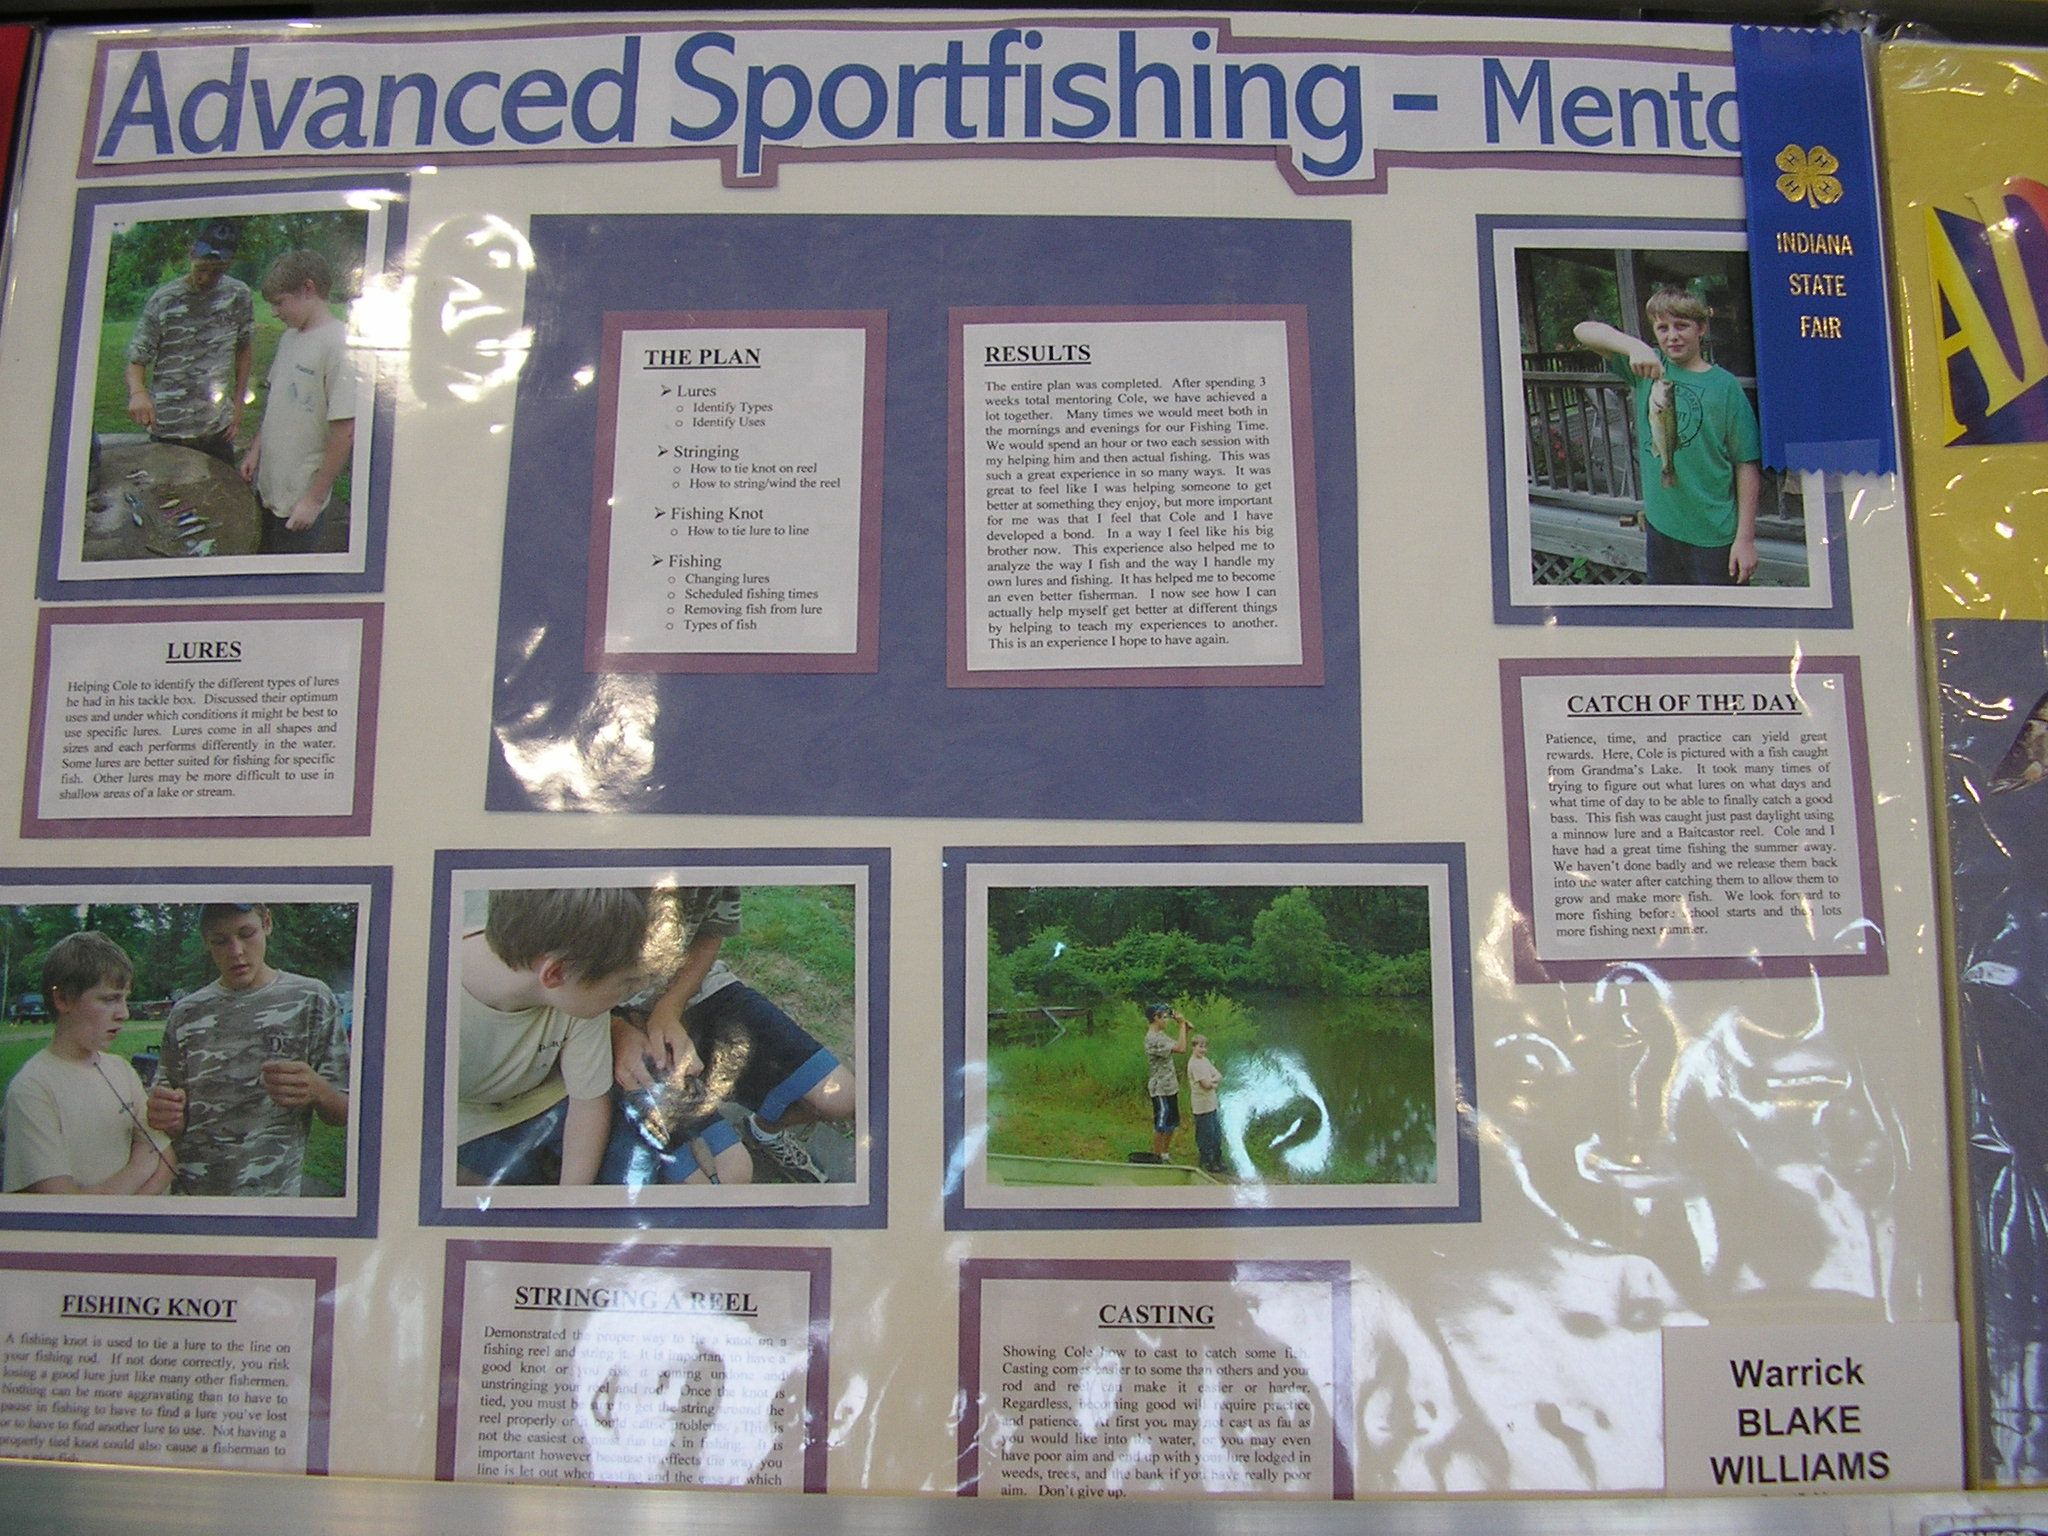 4h fishing poster - Google Search | 4H project ideas | Pinterest ...